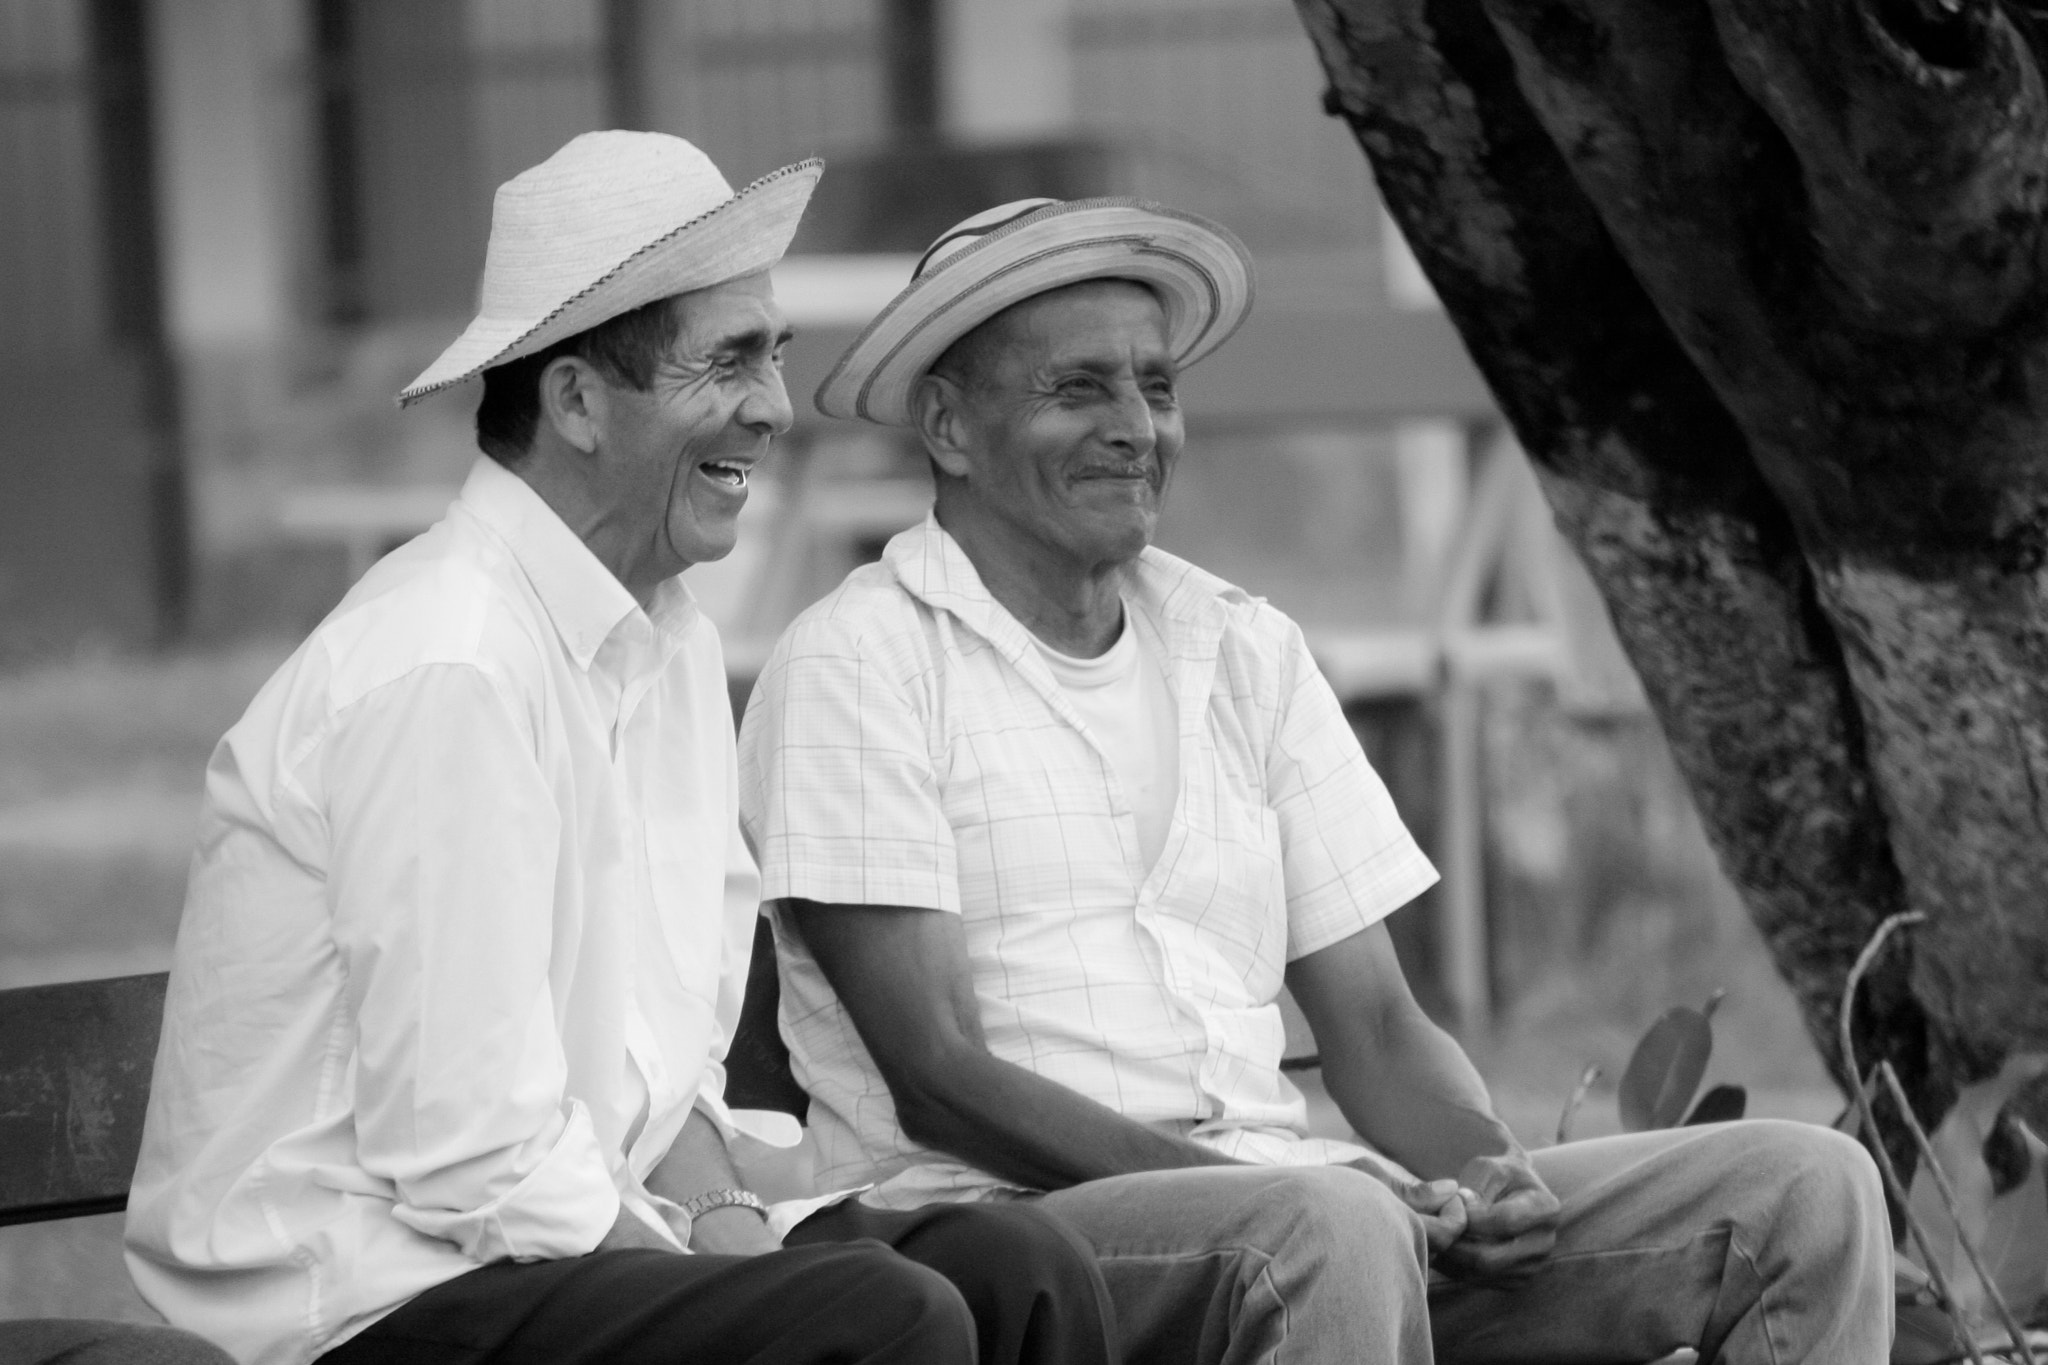 Photograph Origins of Panama Hats by Jonathan H. Lee on 500px